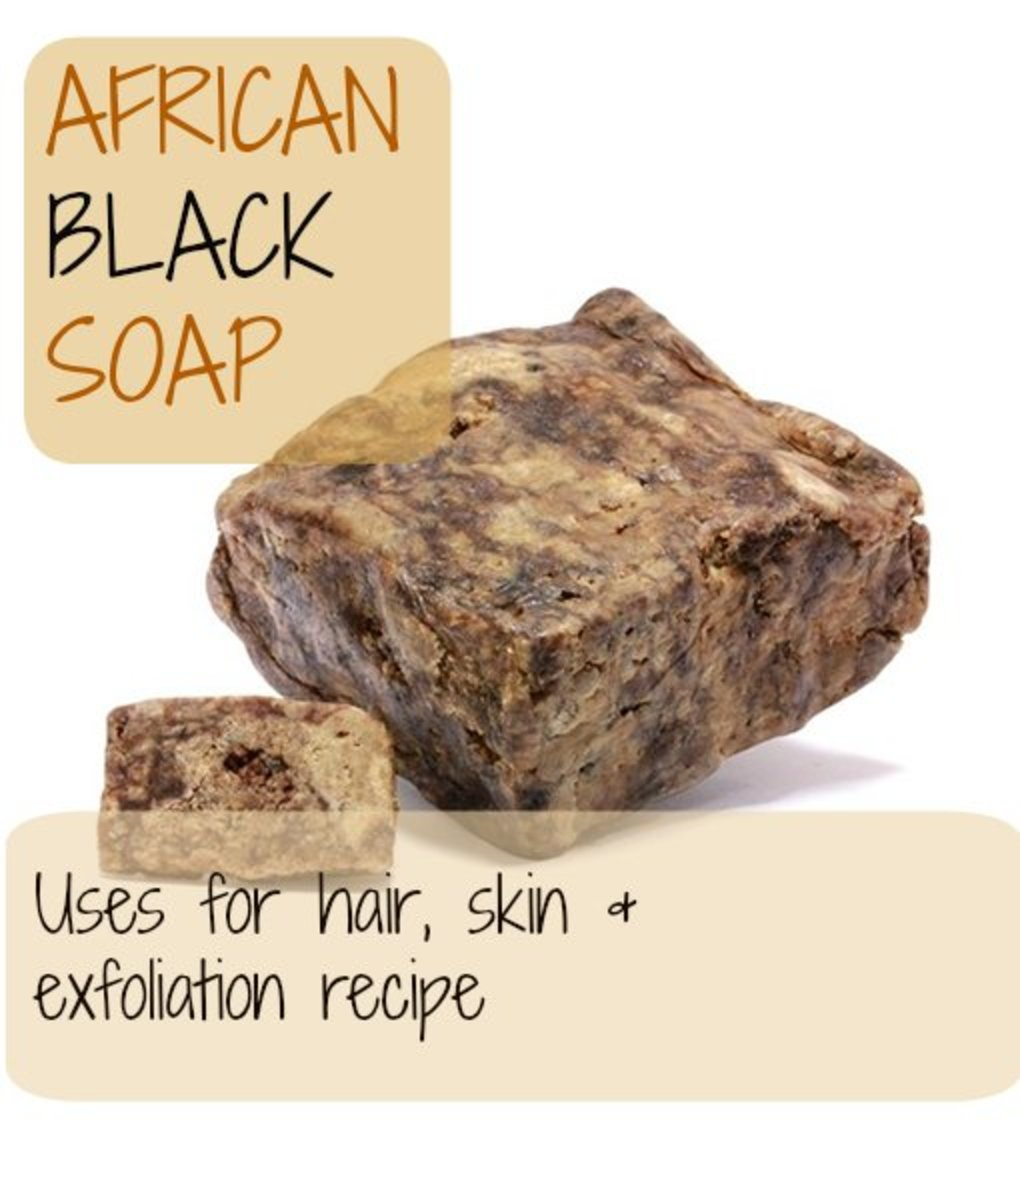 How to Make Black African Soap and Exfoliation Recipe